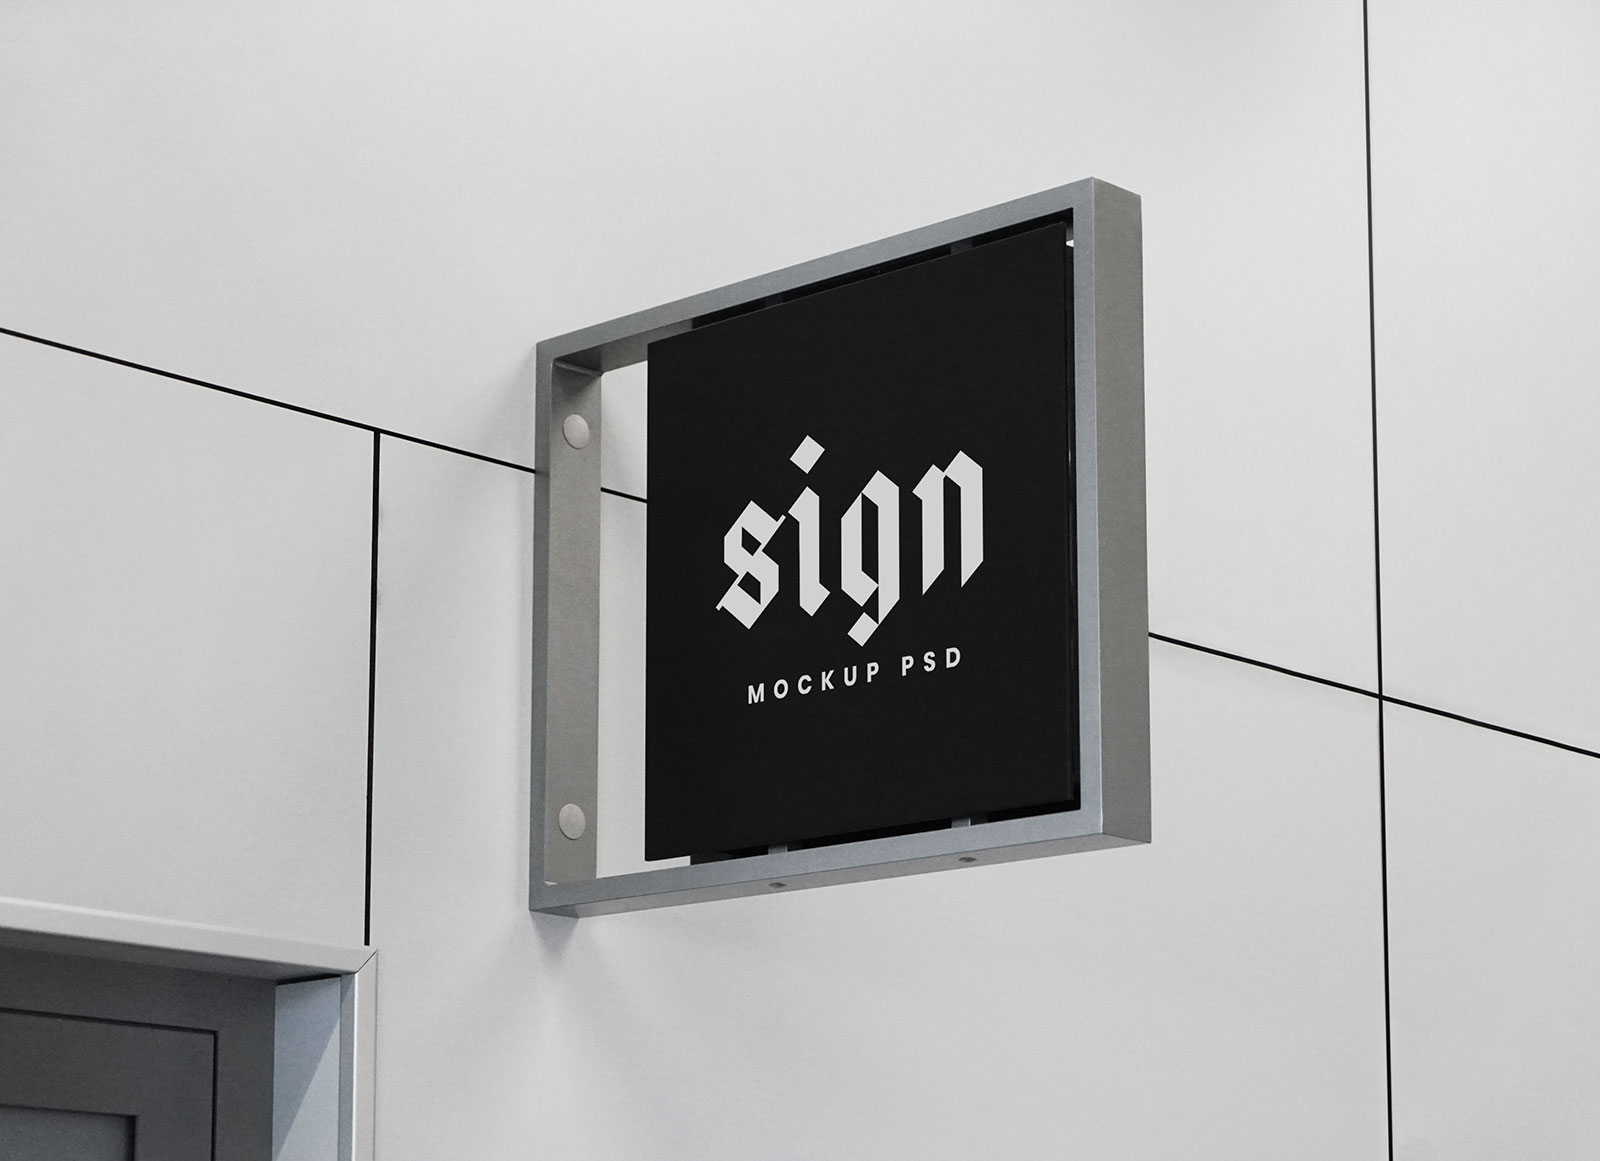 Free Indoor Wall Mounted Sign Mockup PSD